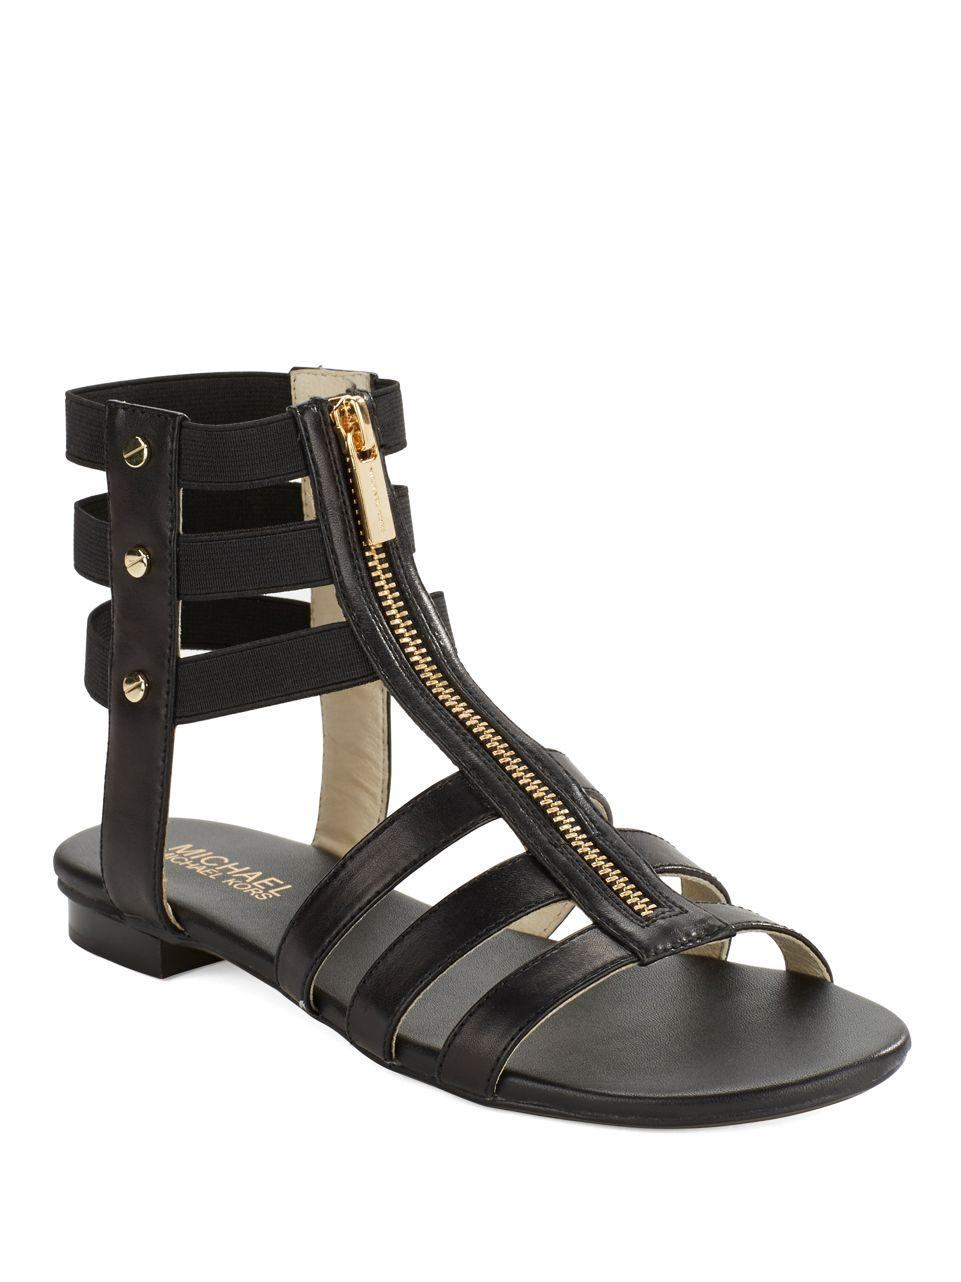 Lyst - Michael Michael Kors Codie Leather Gladiator ...